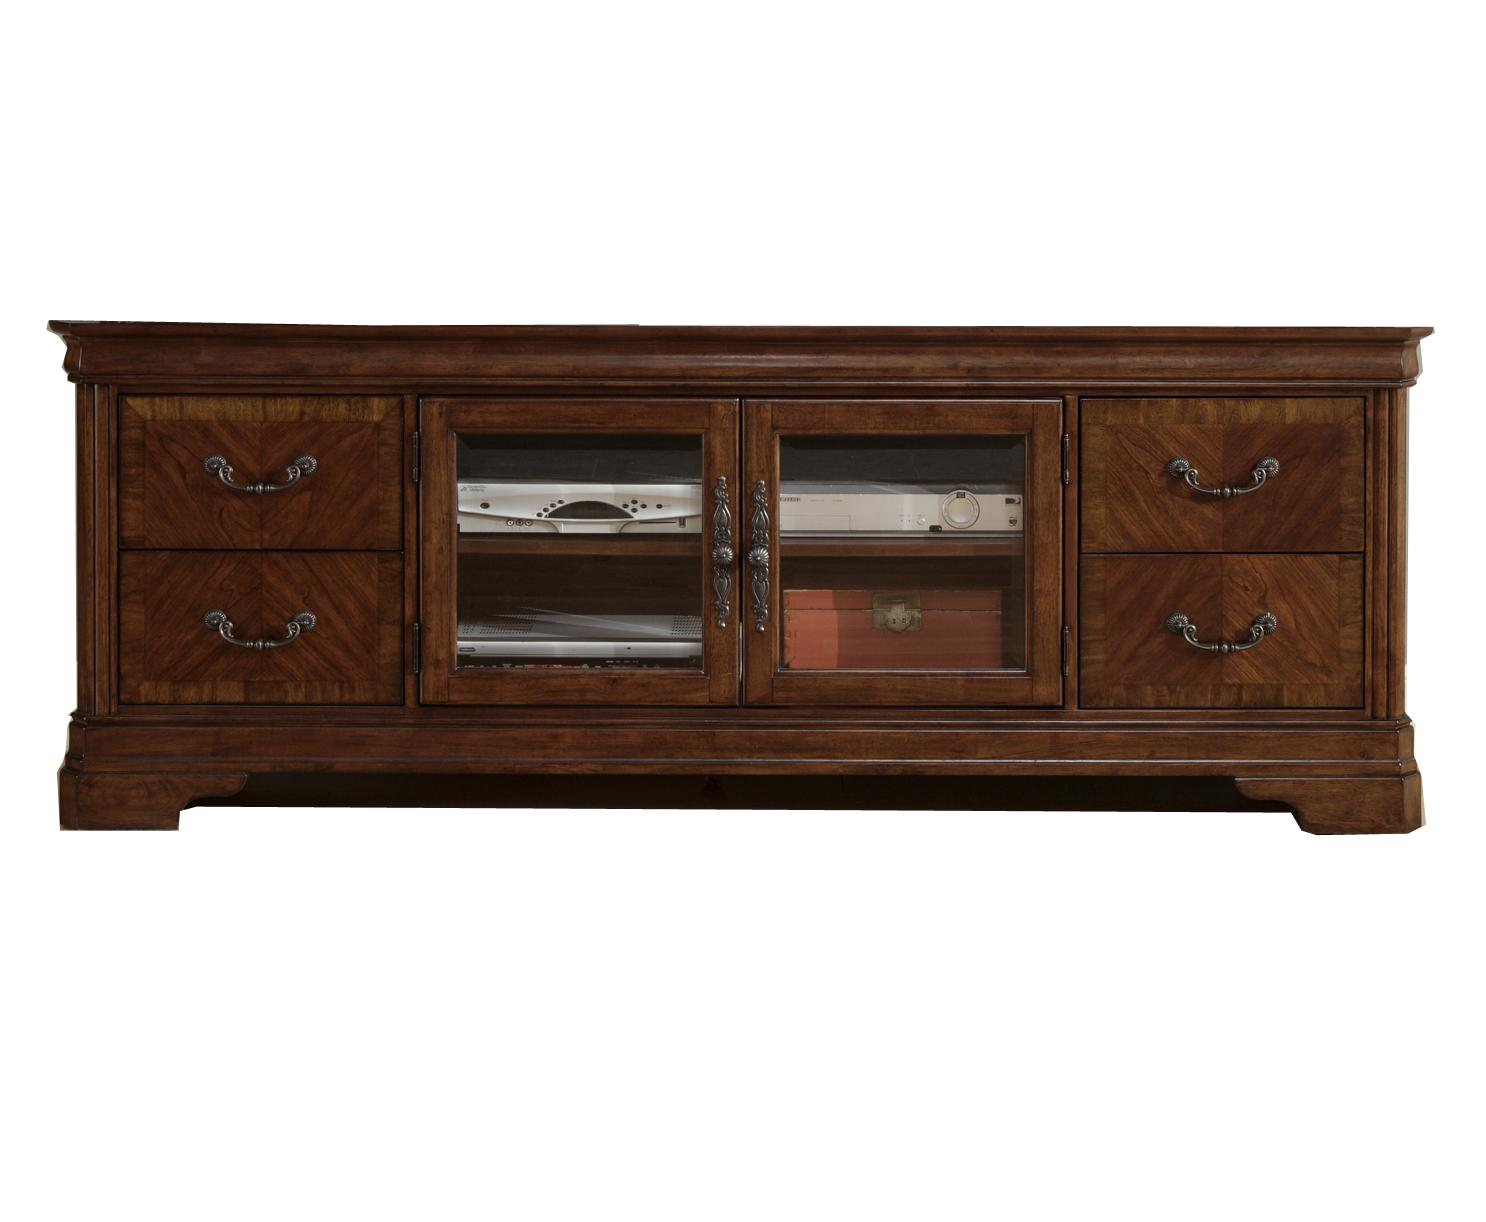 2 Door Entertainment Tv Stand With Drawers By Liberty Furniture Wolf And Gardiner Wolf Furniture